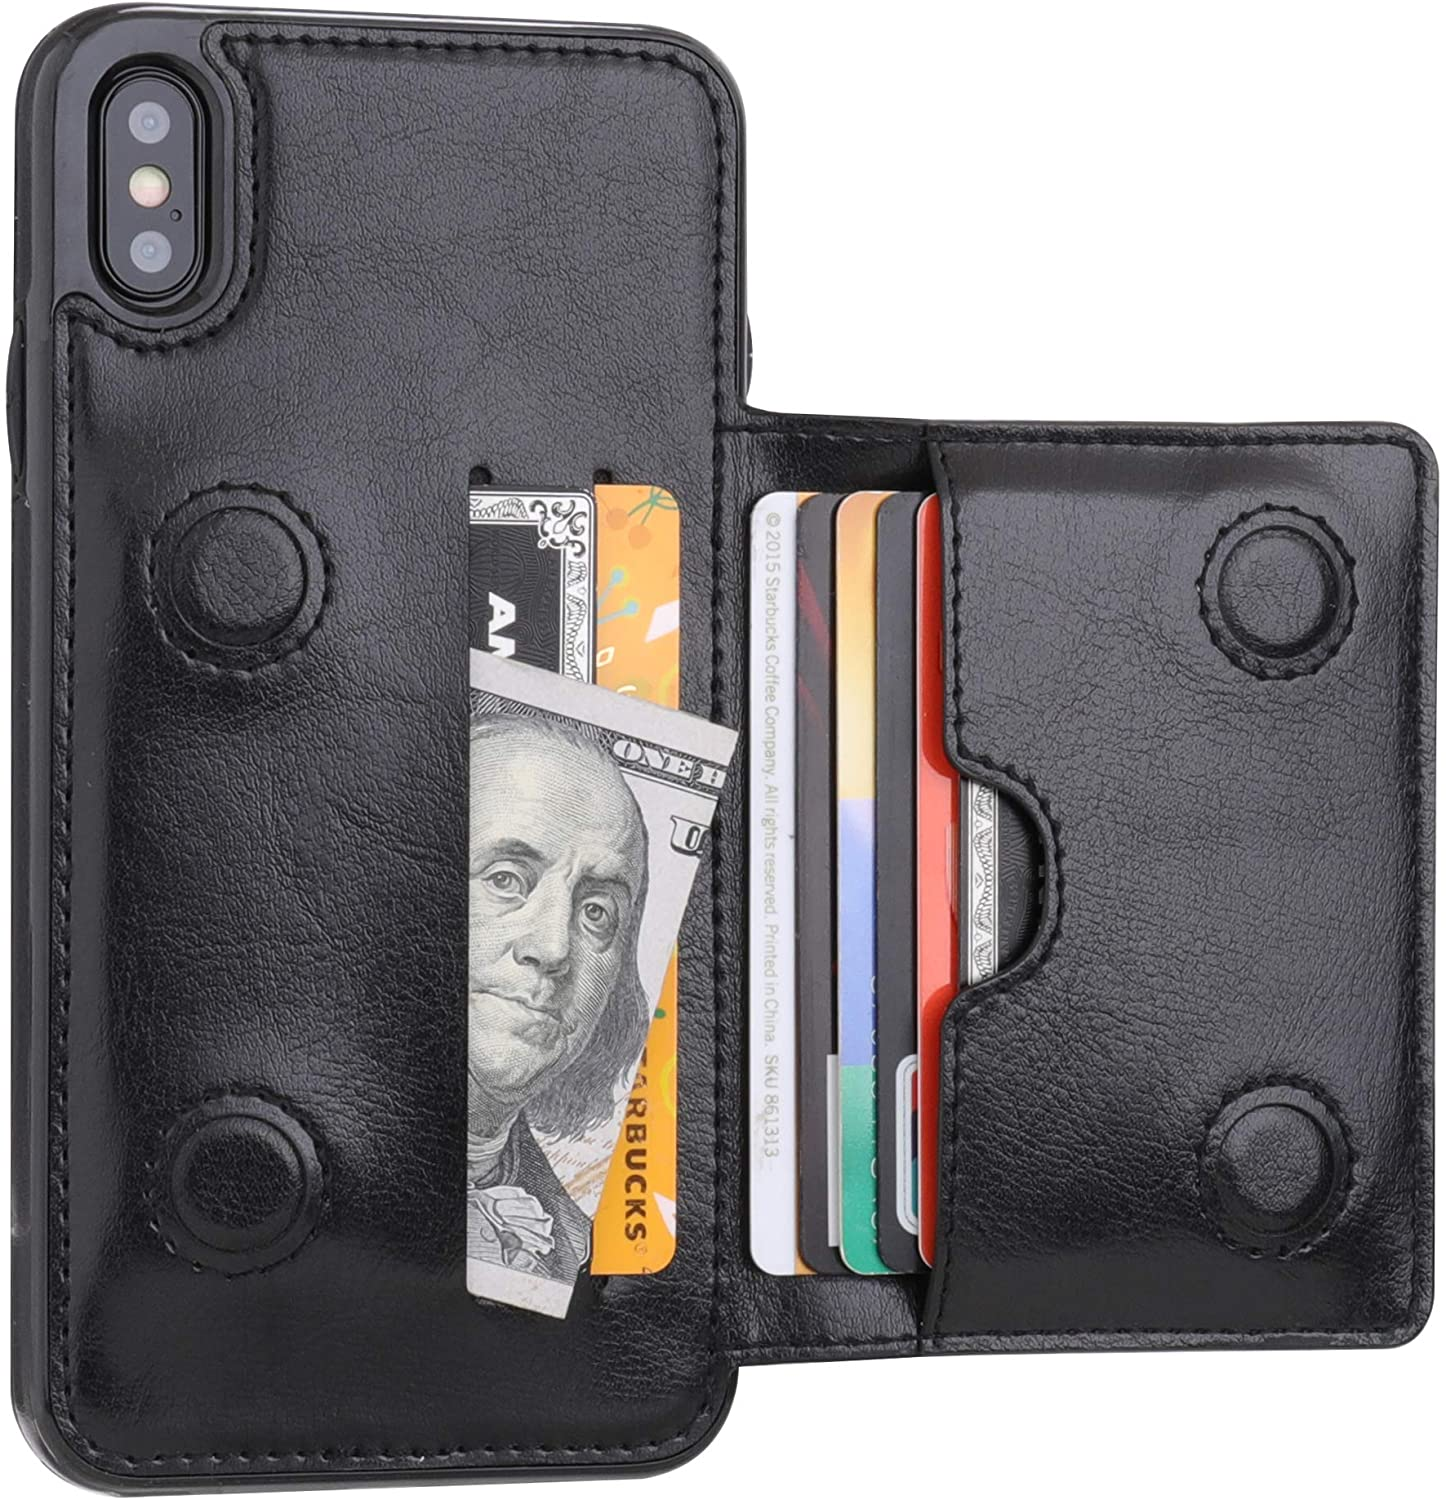 iPhone Xs Max Wallet Case with Credit Card Holder, KIHUWEY Leather Kickstand Durable Shockproof Protective Hidden Magnetic Closure Cover for iPhone Xs Max 6.5 Inch(Black)